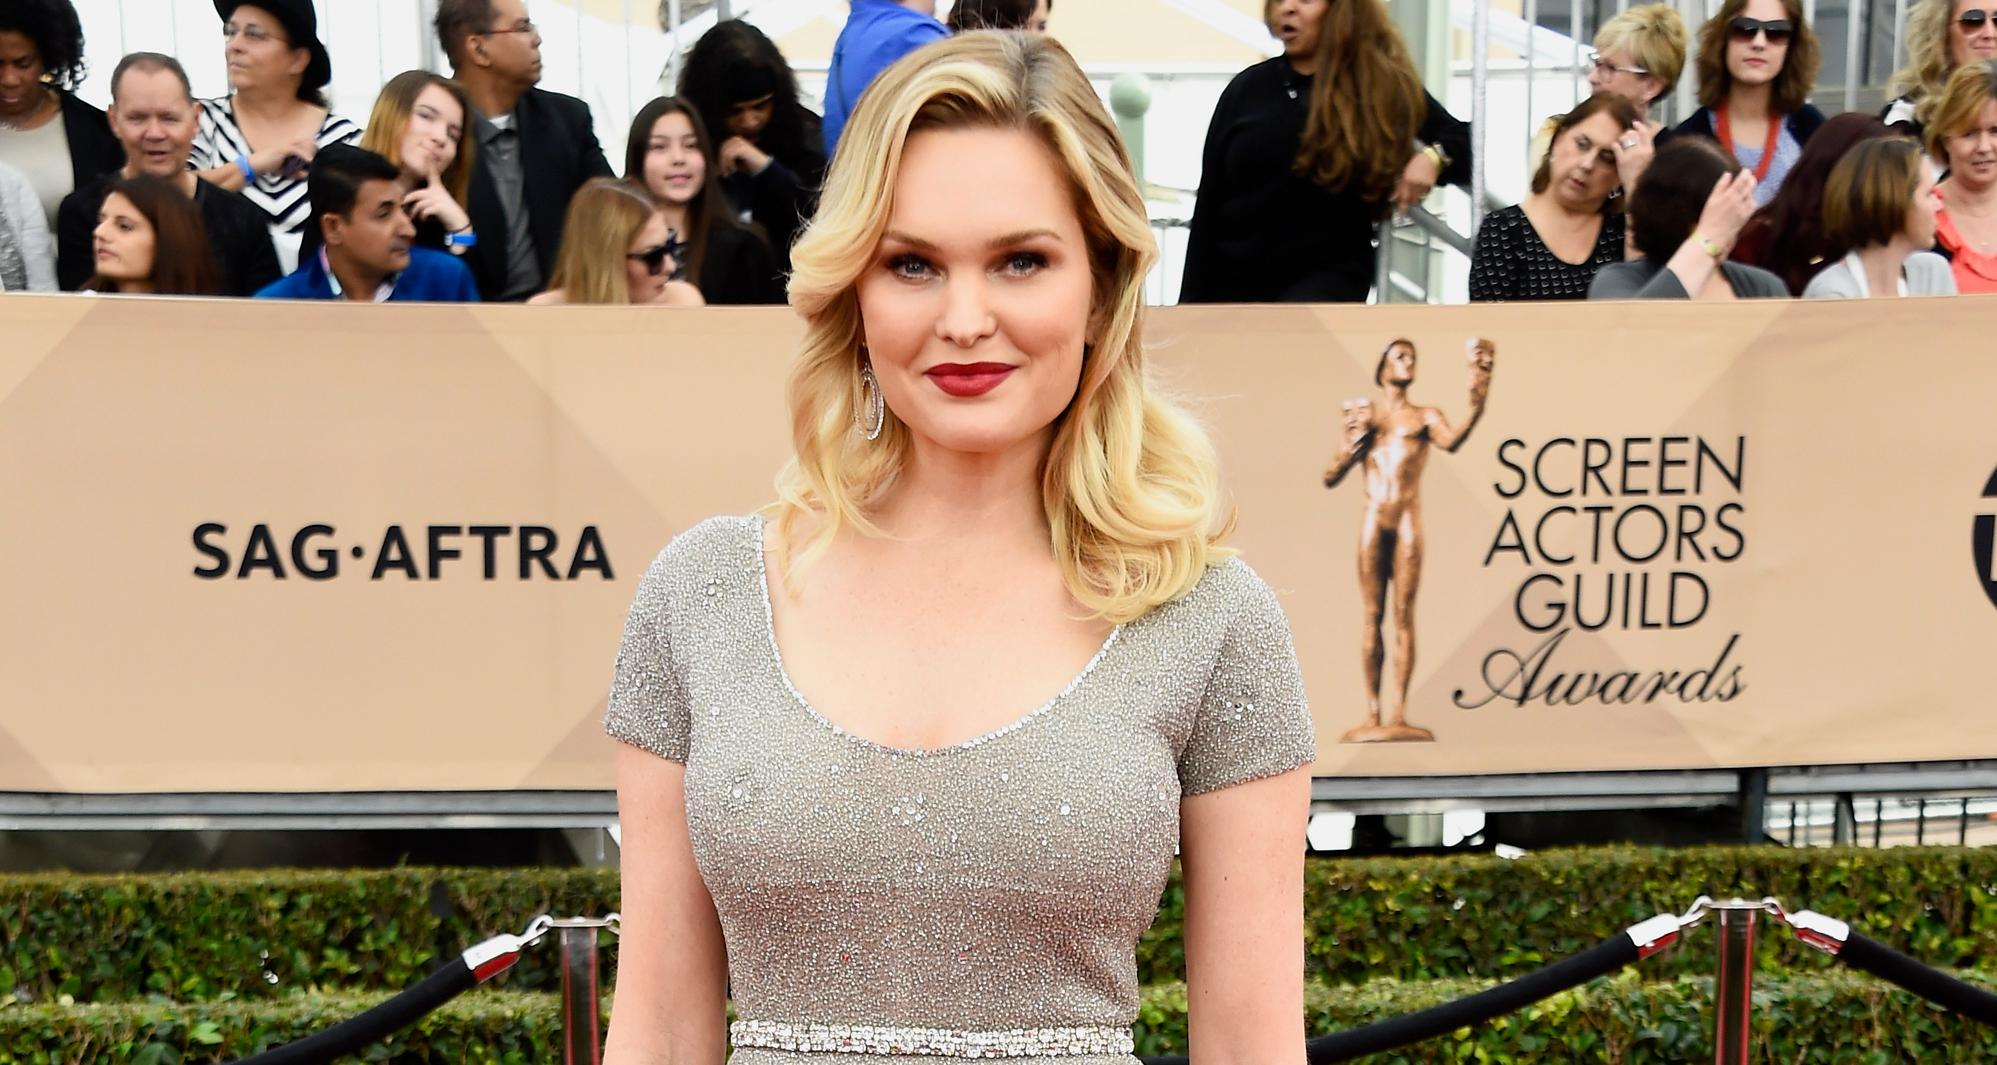 Actress Sunny Mabrey attends the 22nd Annual Screen Actors Guild Awards at The Shrine Auditorium